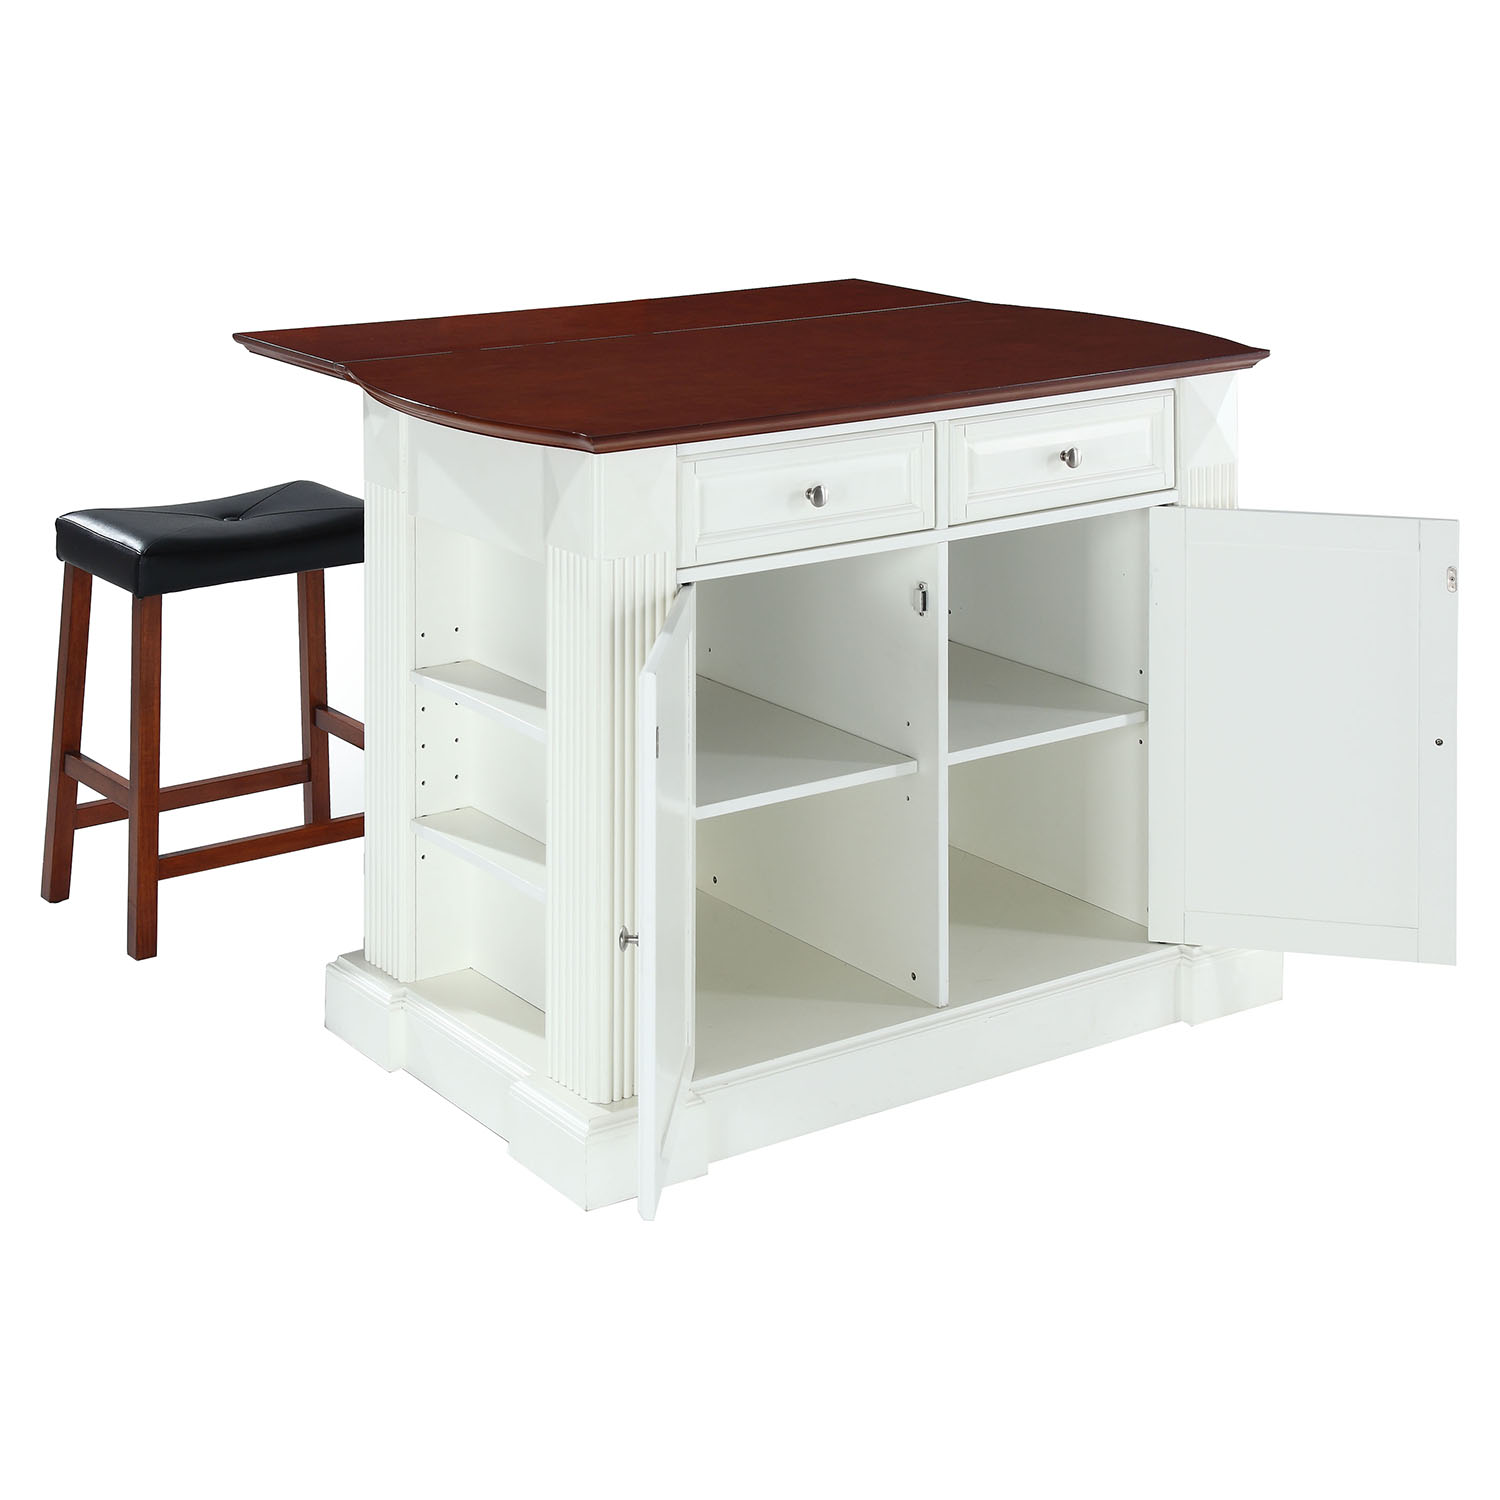 kitchen island with drop leaf breakfast bar drop leaf breakfast bar top kitchen island in white with 24 quot cherry stools dcg stores 3127